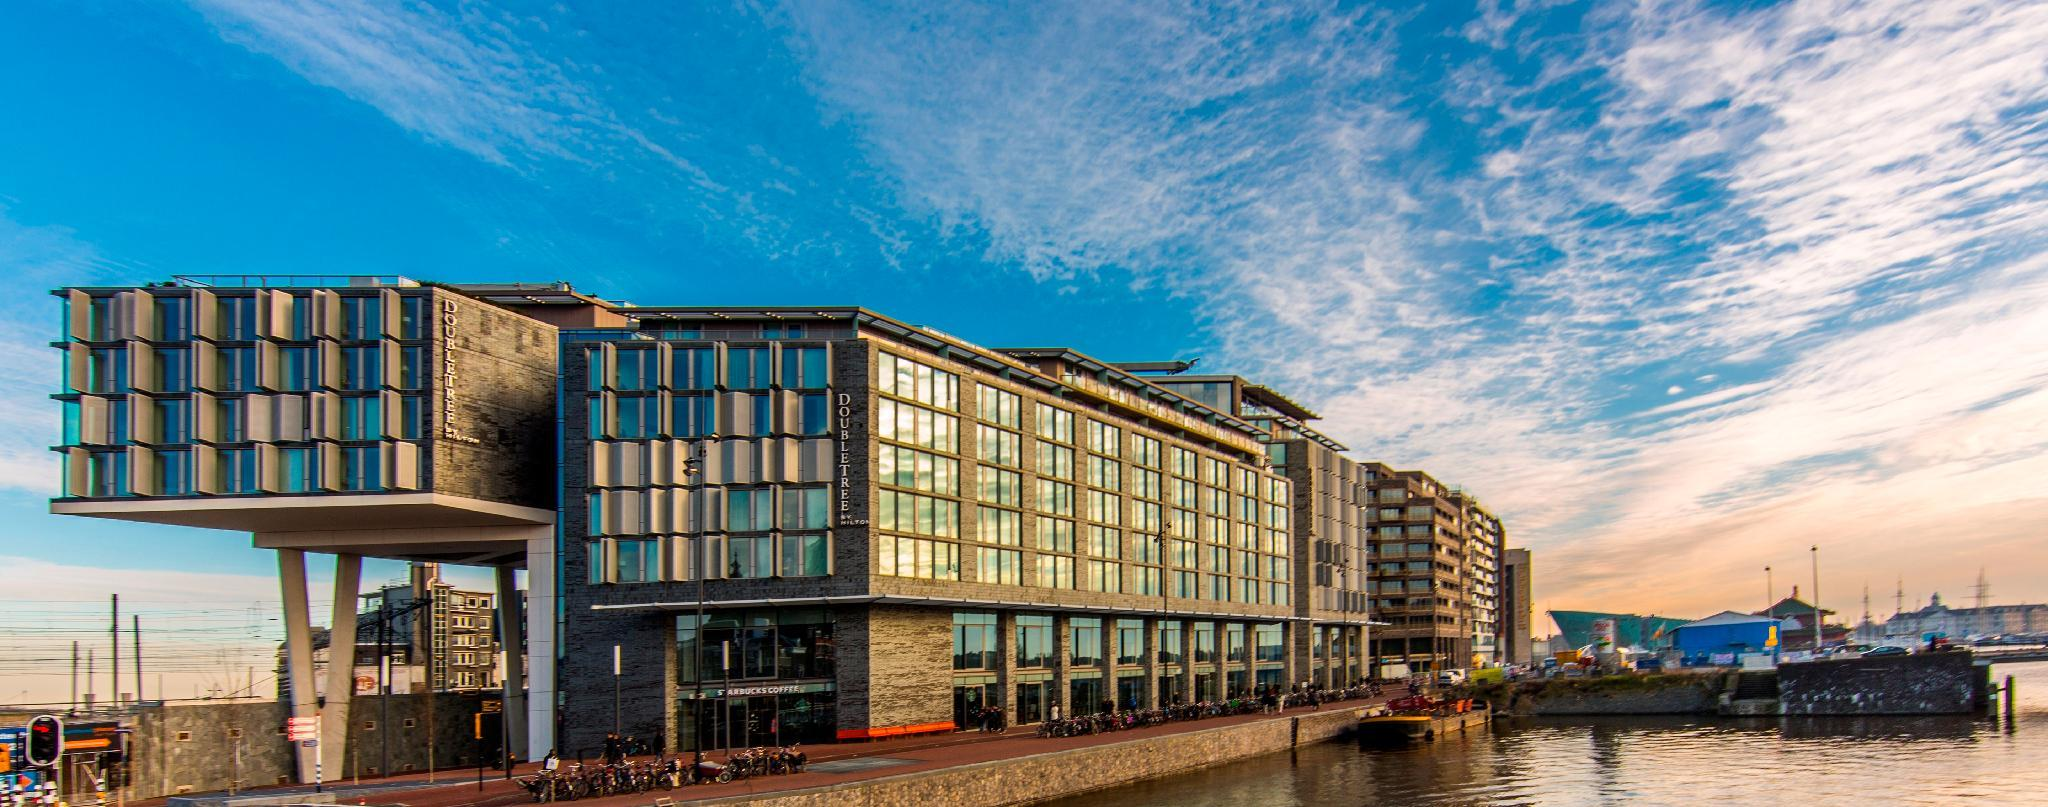 DoubleTree by Hilton Hotel Amsterdam Centraal Station